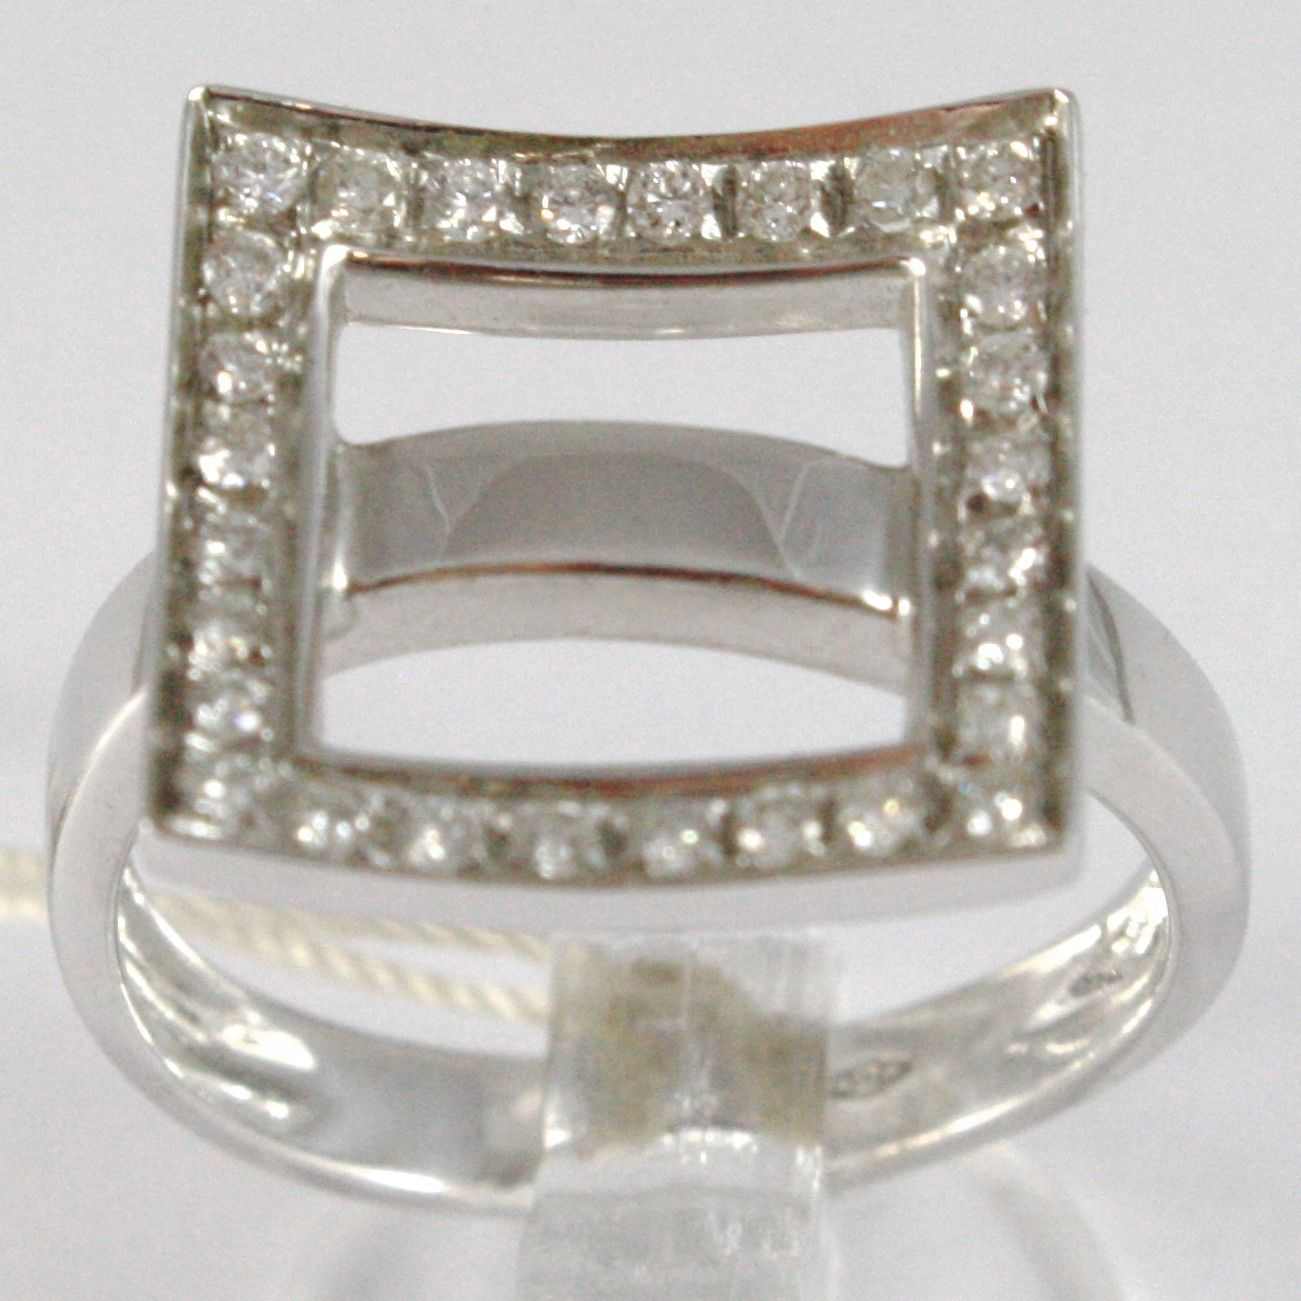 BAGUE EN OR BLANC 750 18K, VERETTA ONDULÉES, CARRÉ DE DIAMANTS, CARAT 0.44